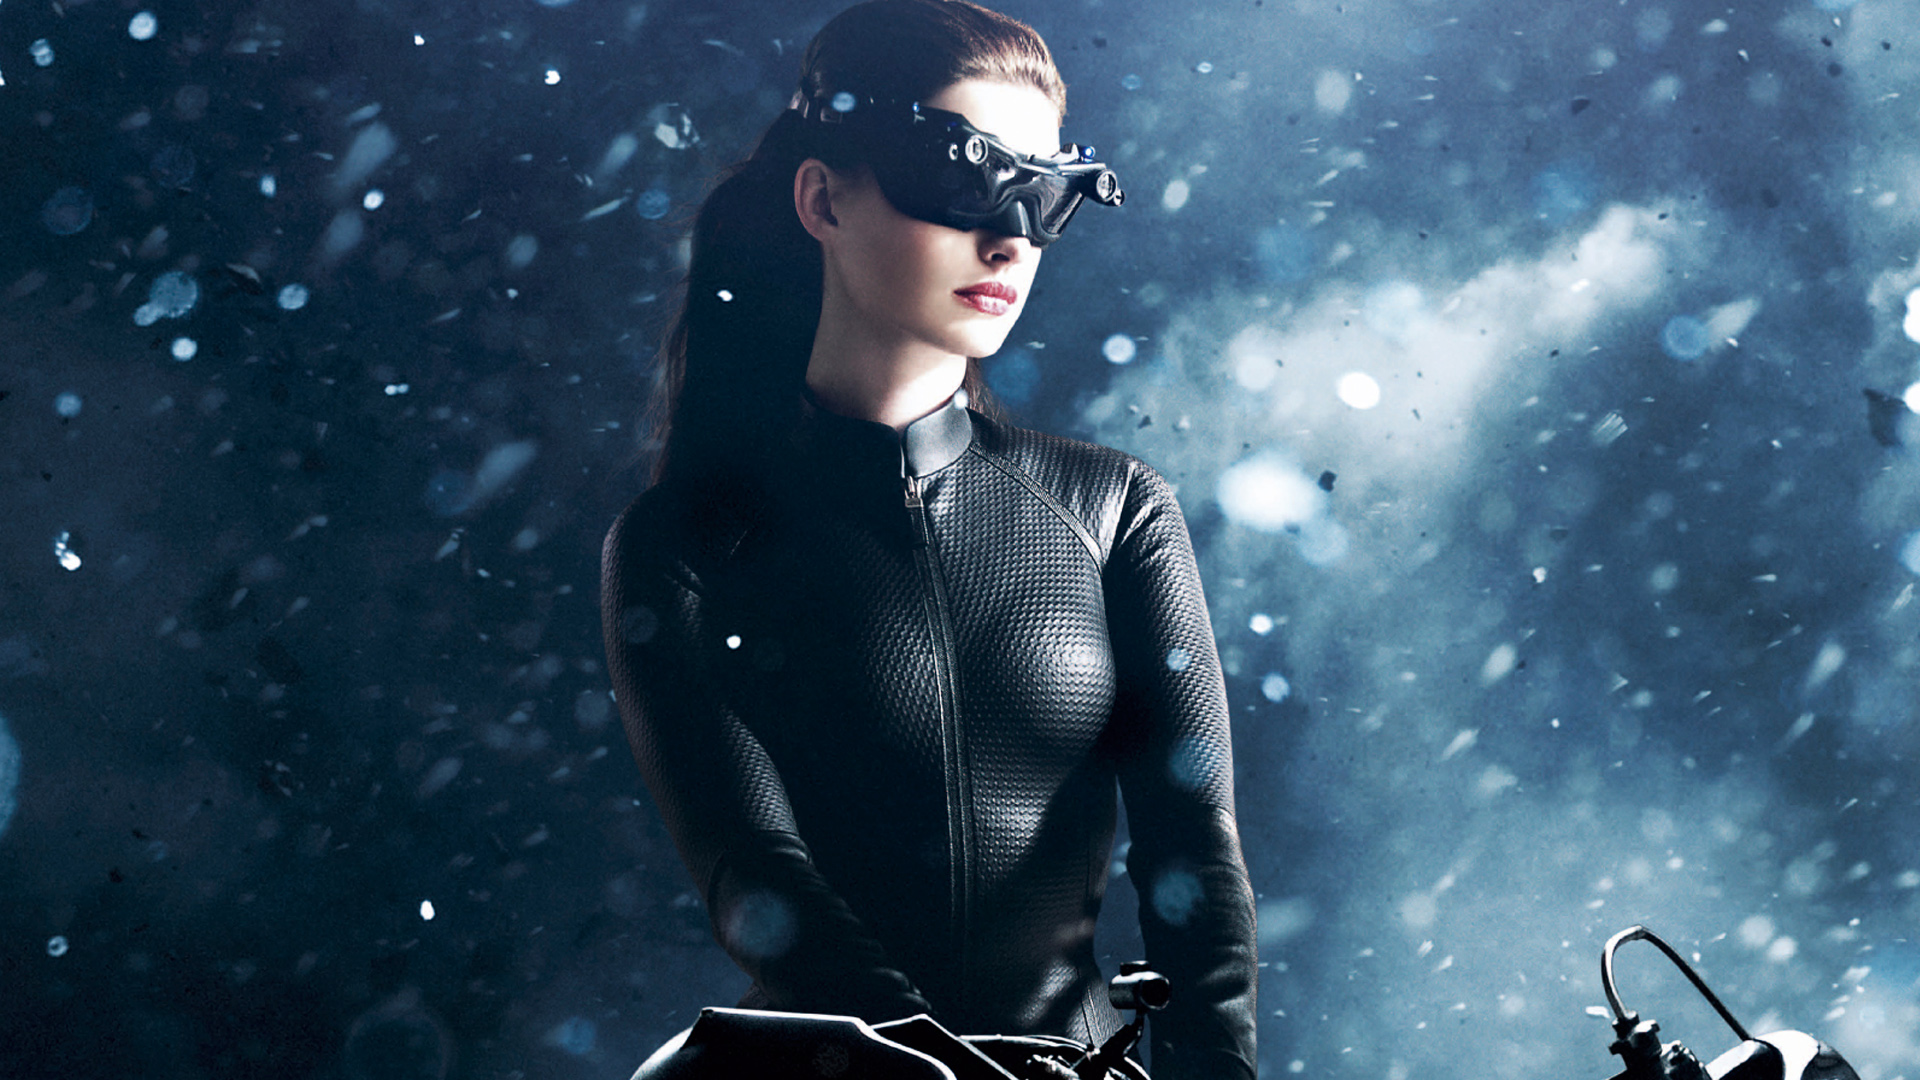 Catwoman Anne Hathaway Wallpapers HD Wallpapers 1920x1080